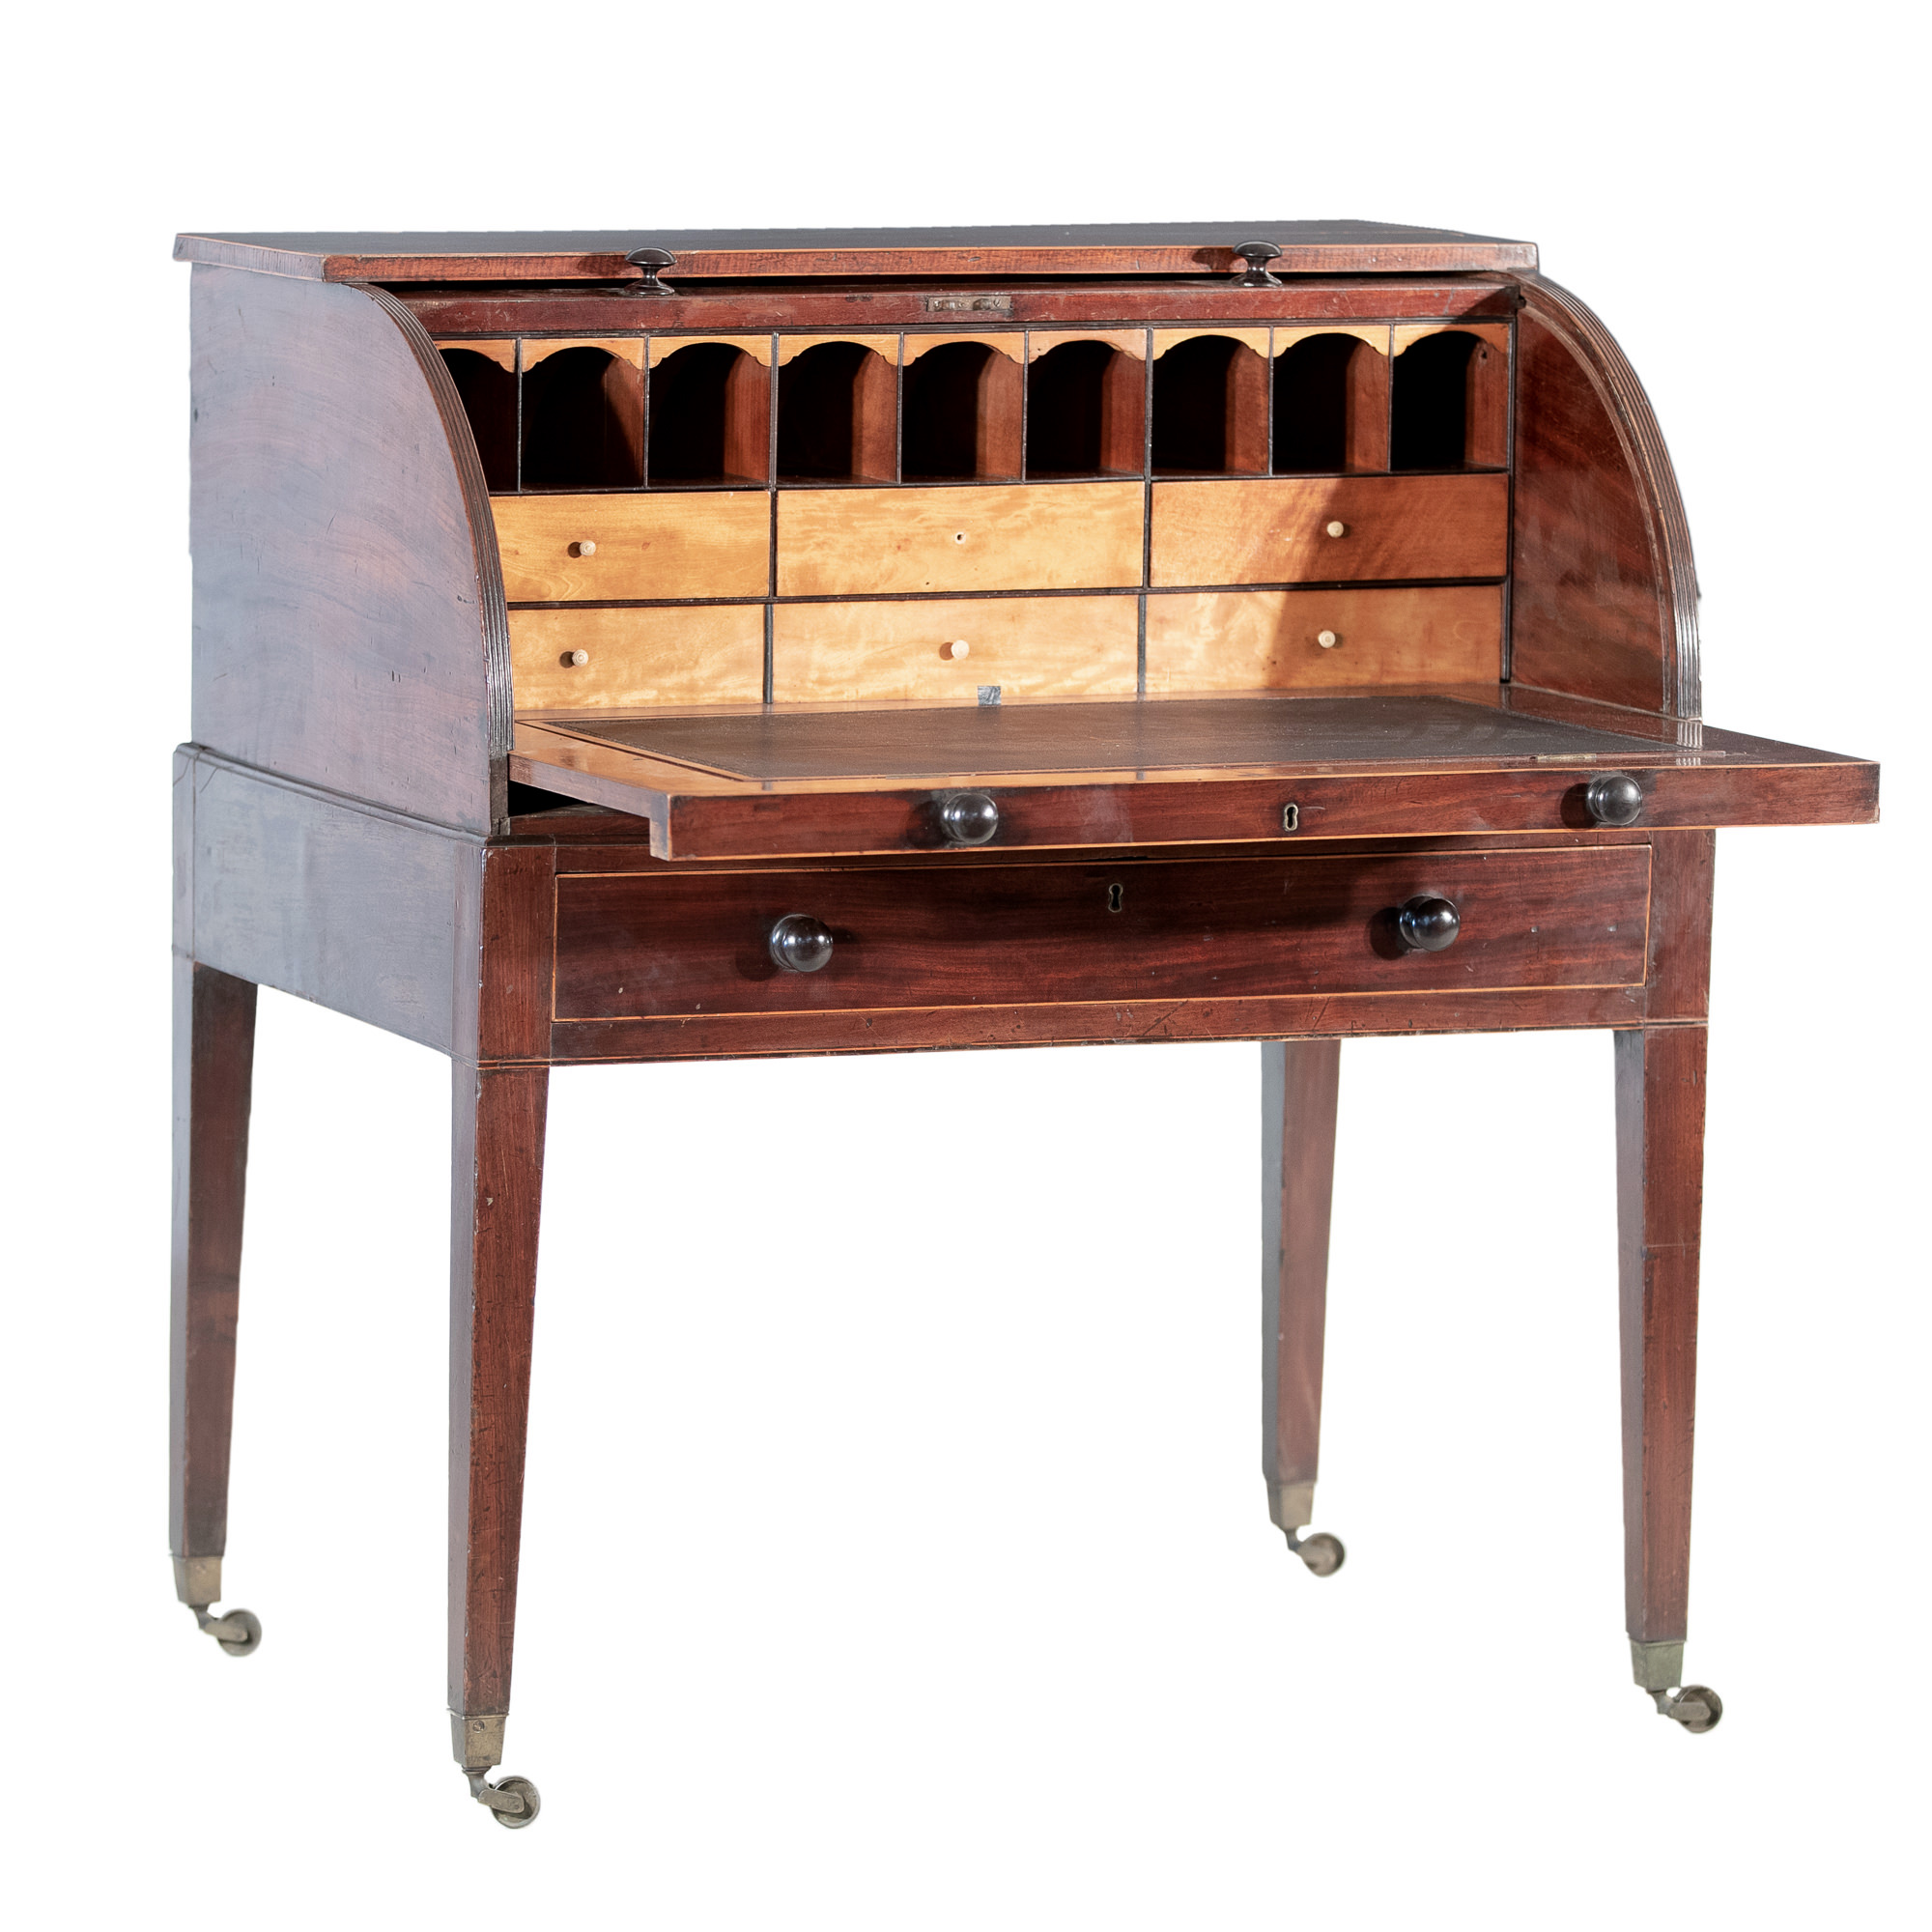 'George III Mahogany and Sycamore Lined Cylinder Top Writing Desk Circa 1800'